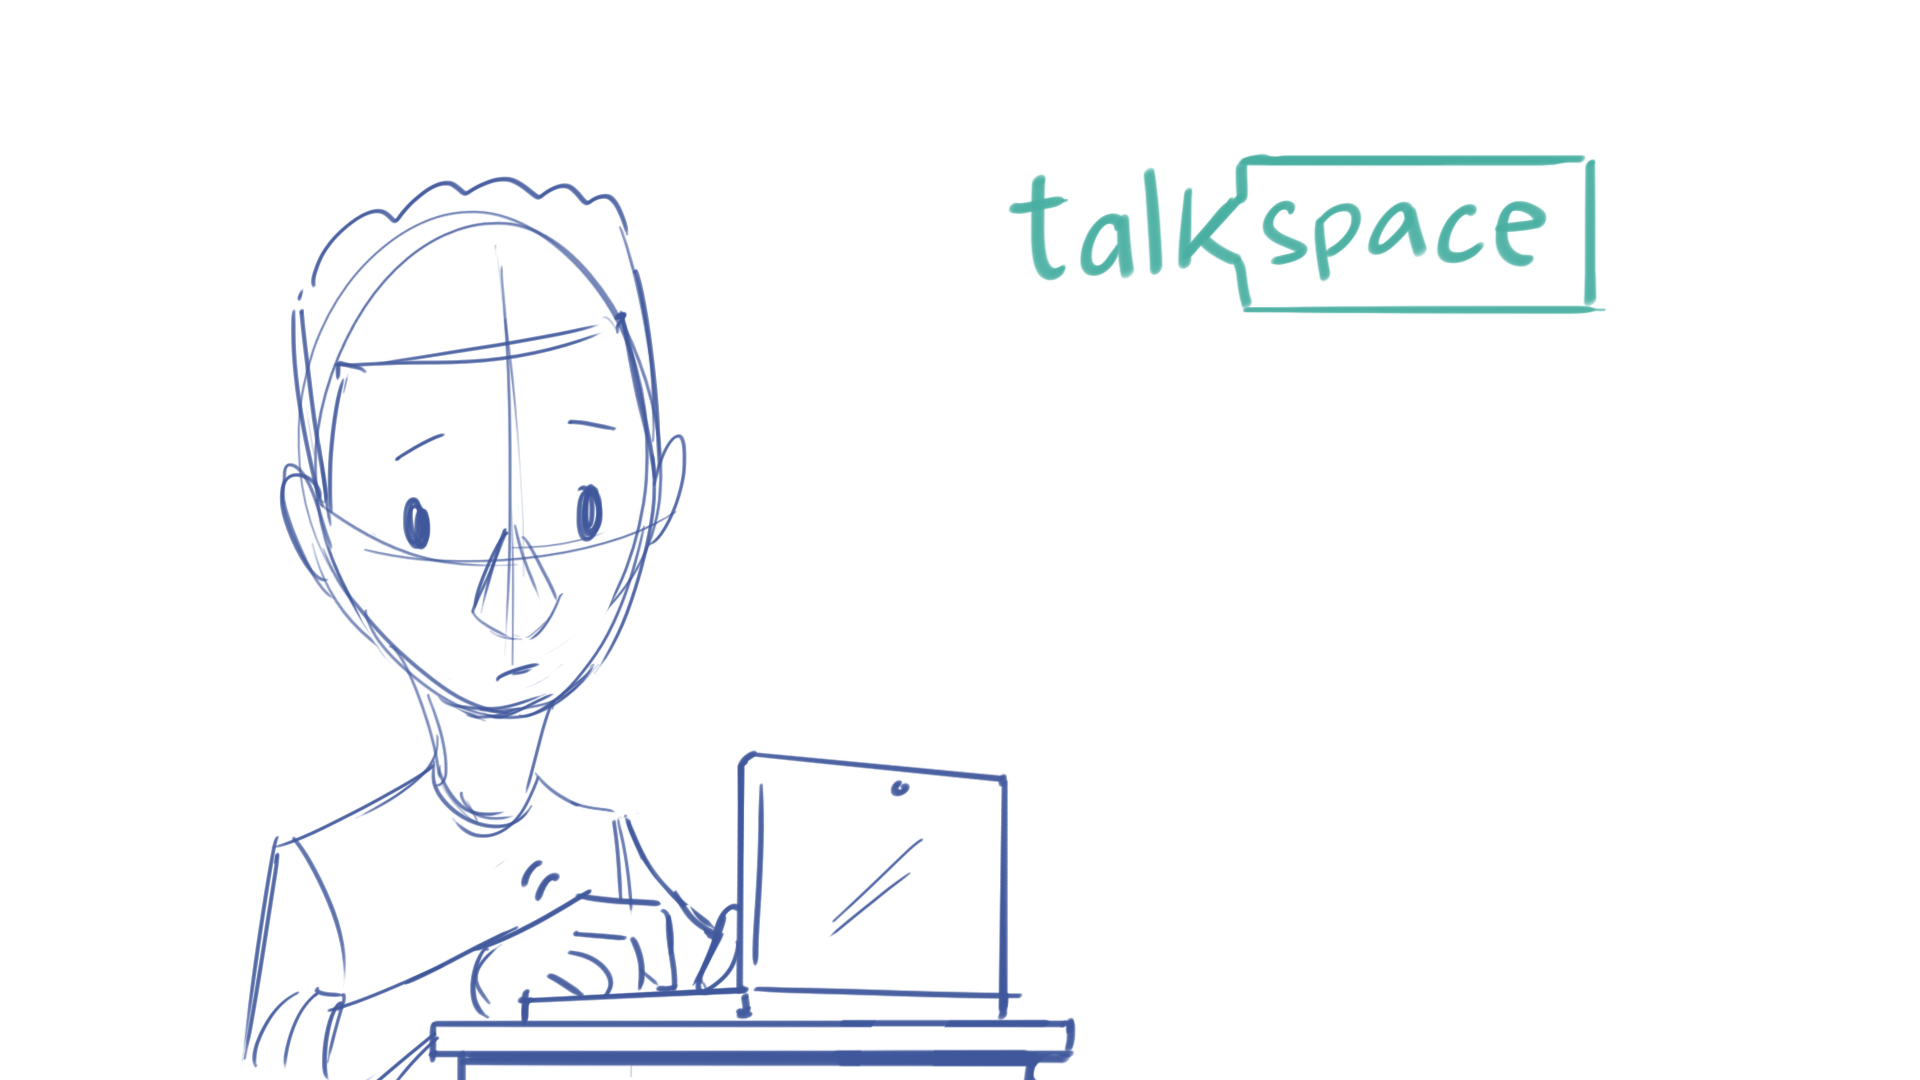 Talkspace_v3_0014_K.jpg